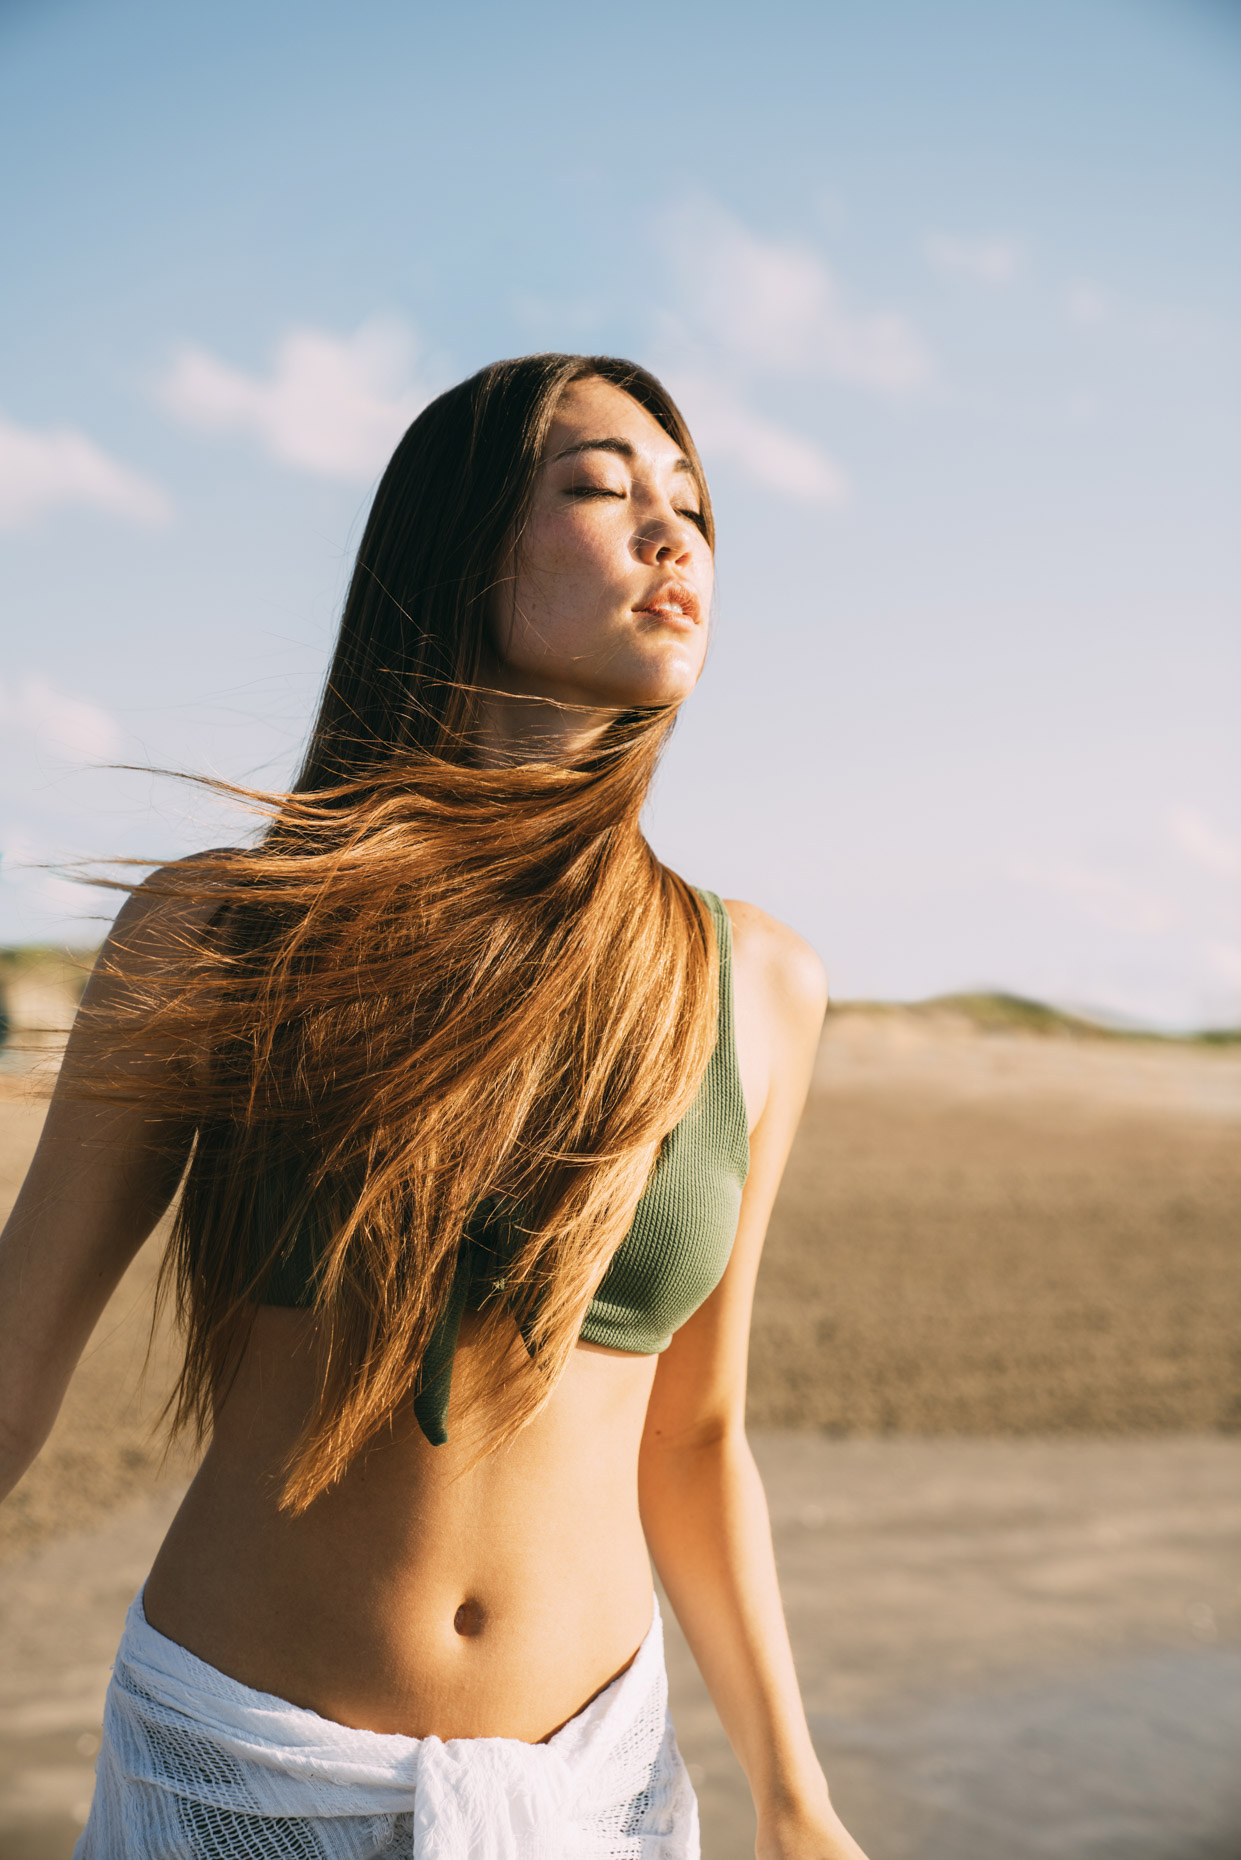 Woman on beach with eyes closed and hair blowing in the wind